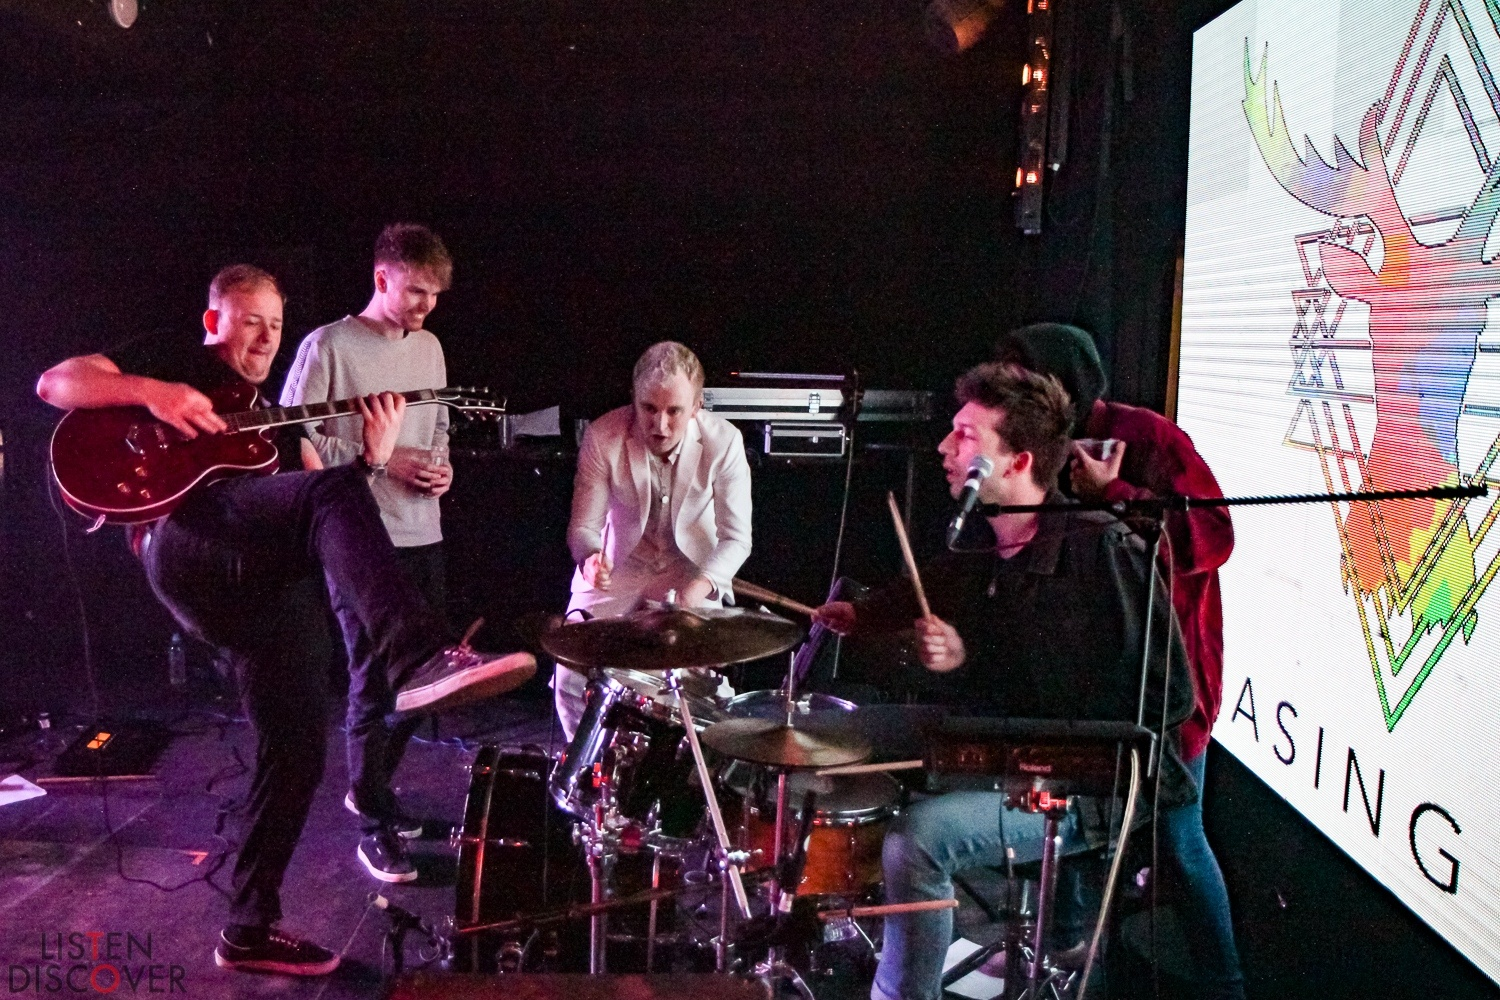 Chasing Deer at Brixton Jamm - 7th February 2020